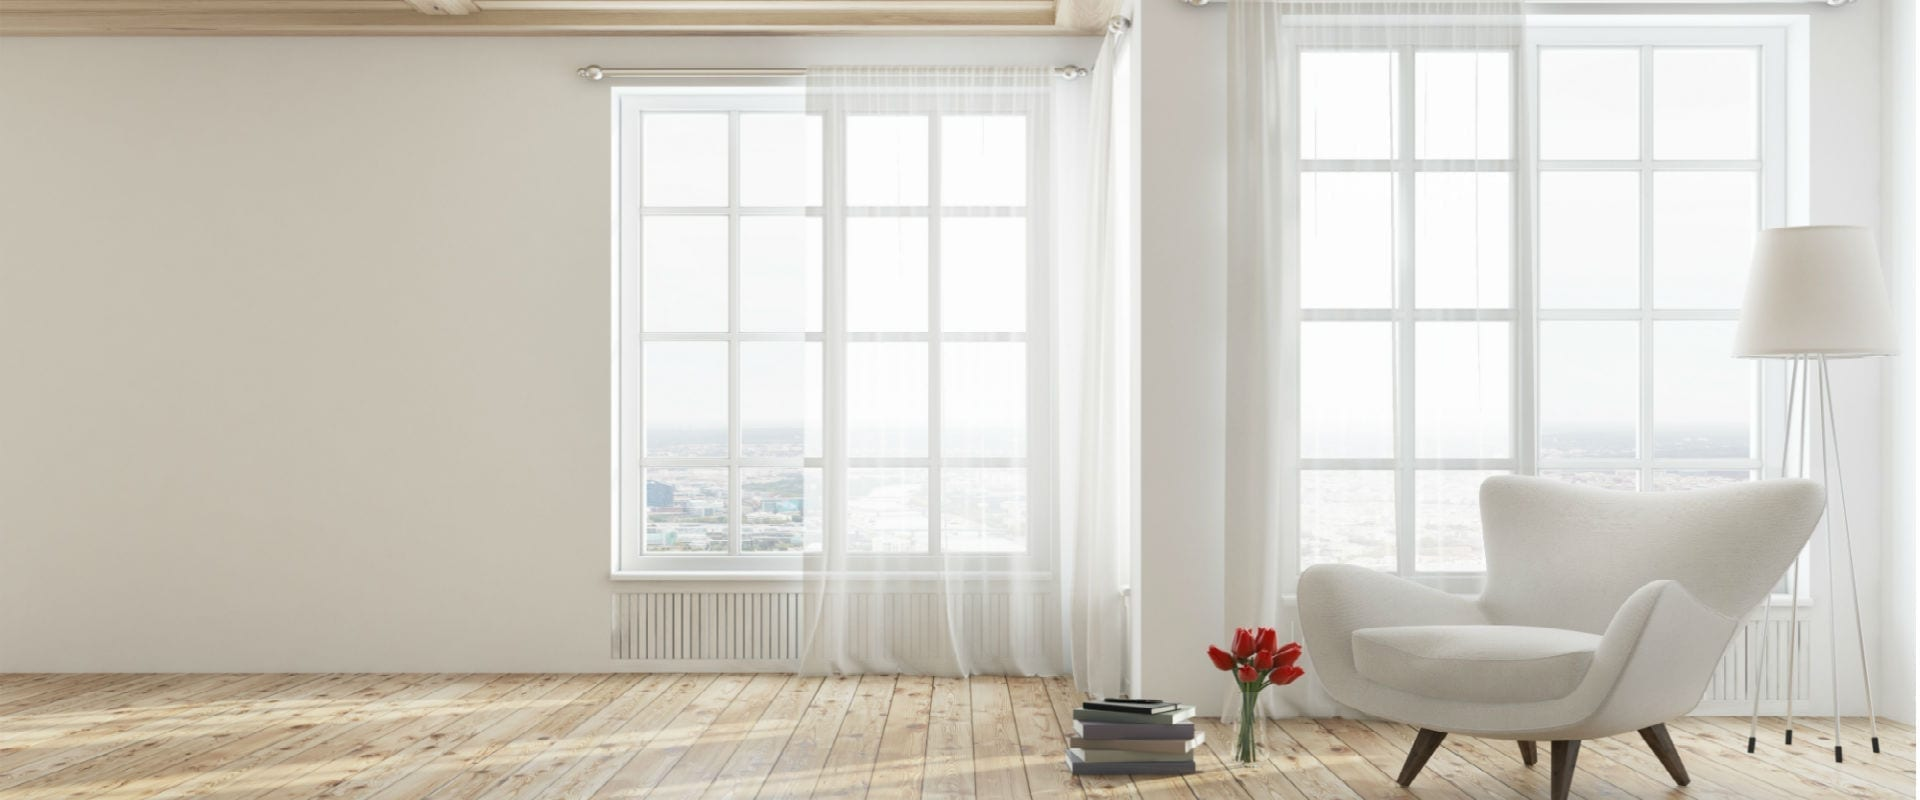 What Are The Best Types Of Home Windows